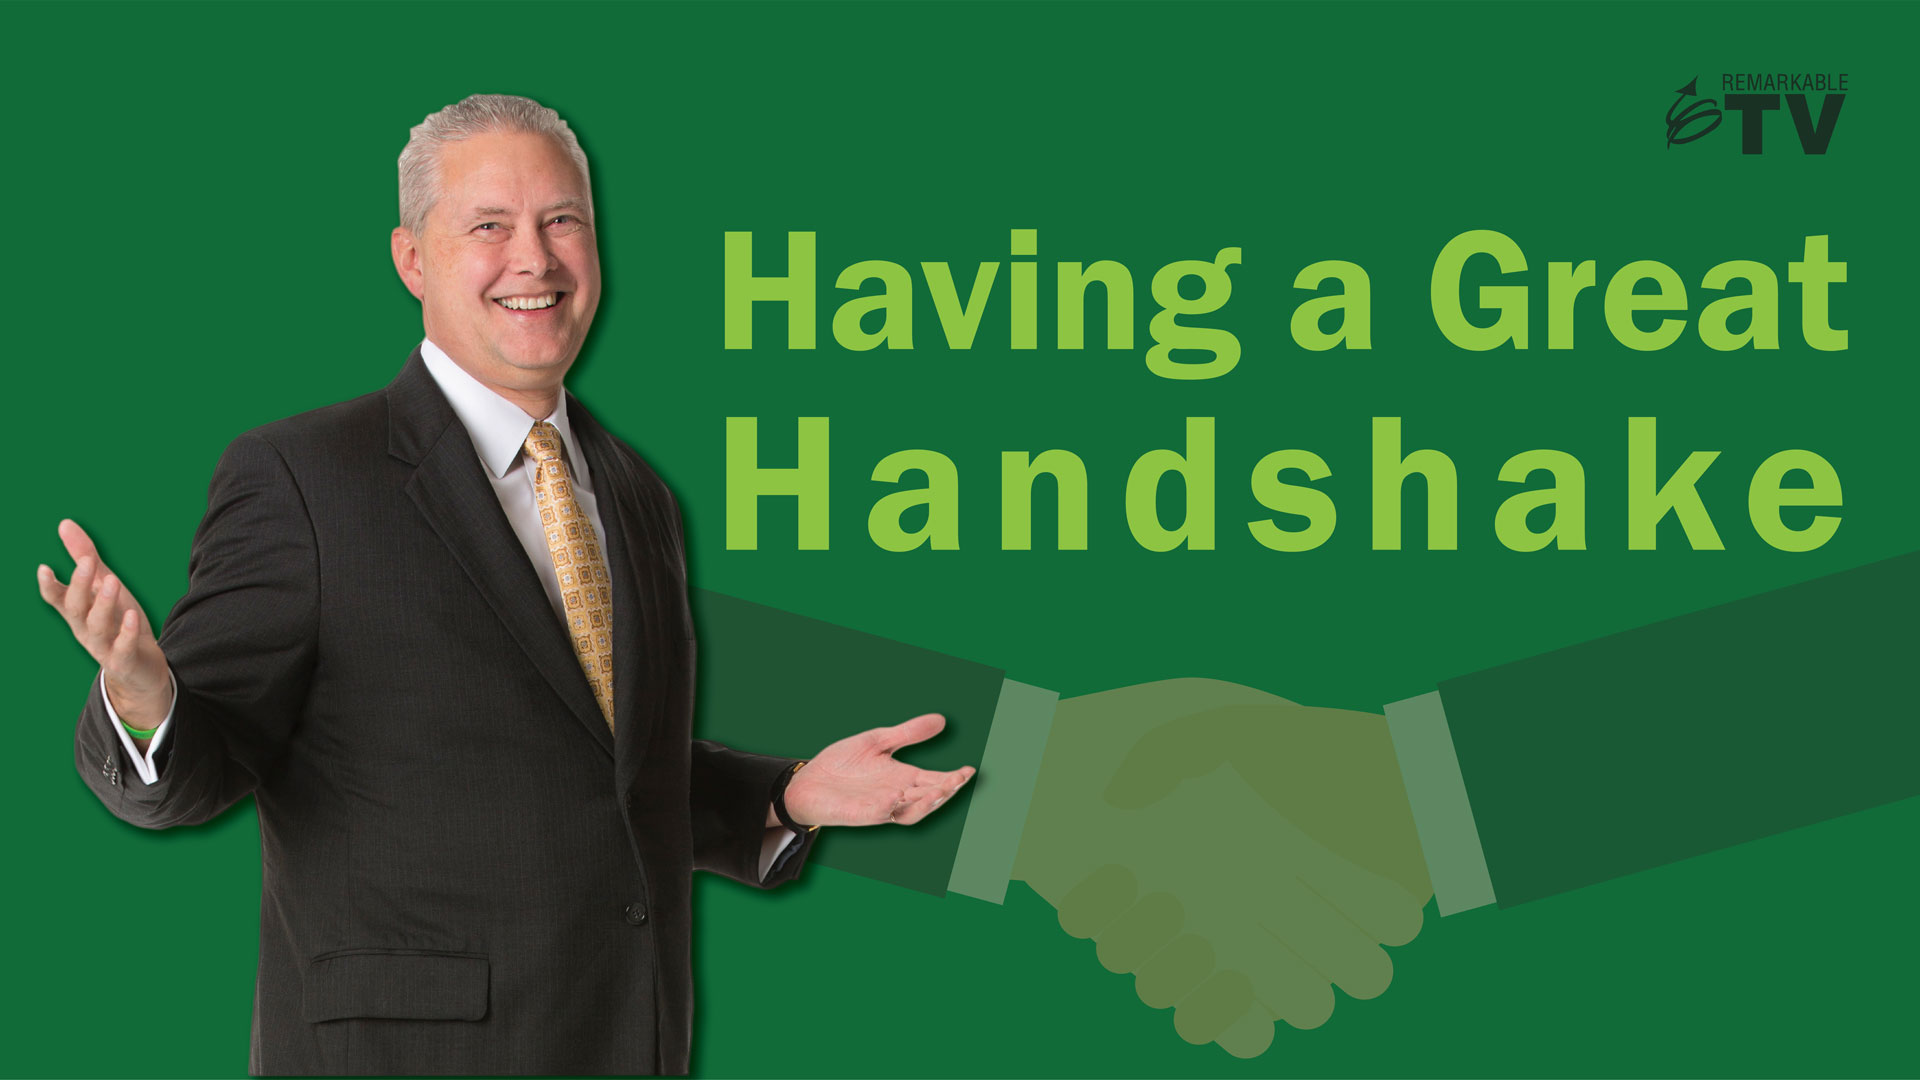 Having a Great Handshake - Remarkable TV with Kevin Eikenberry